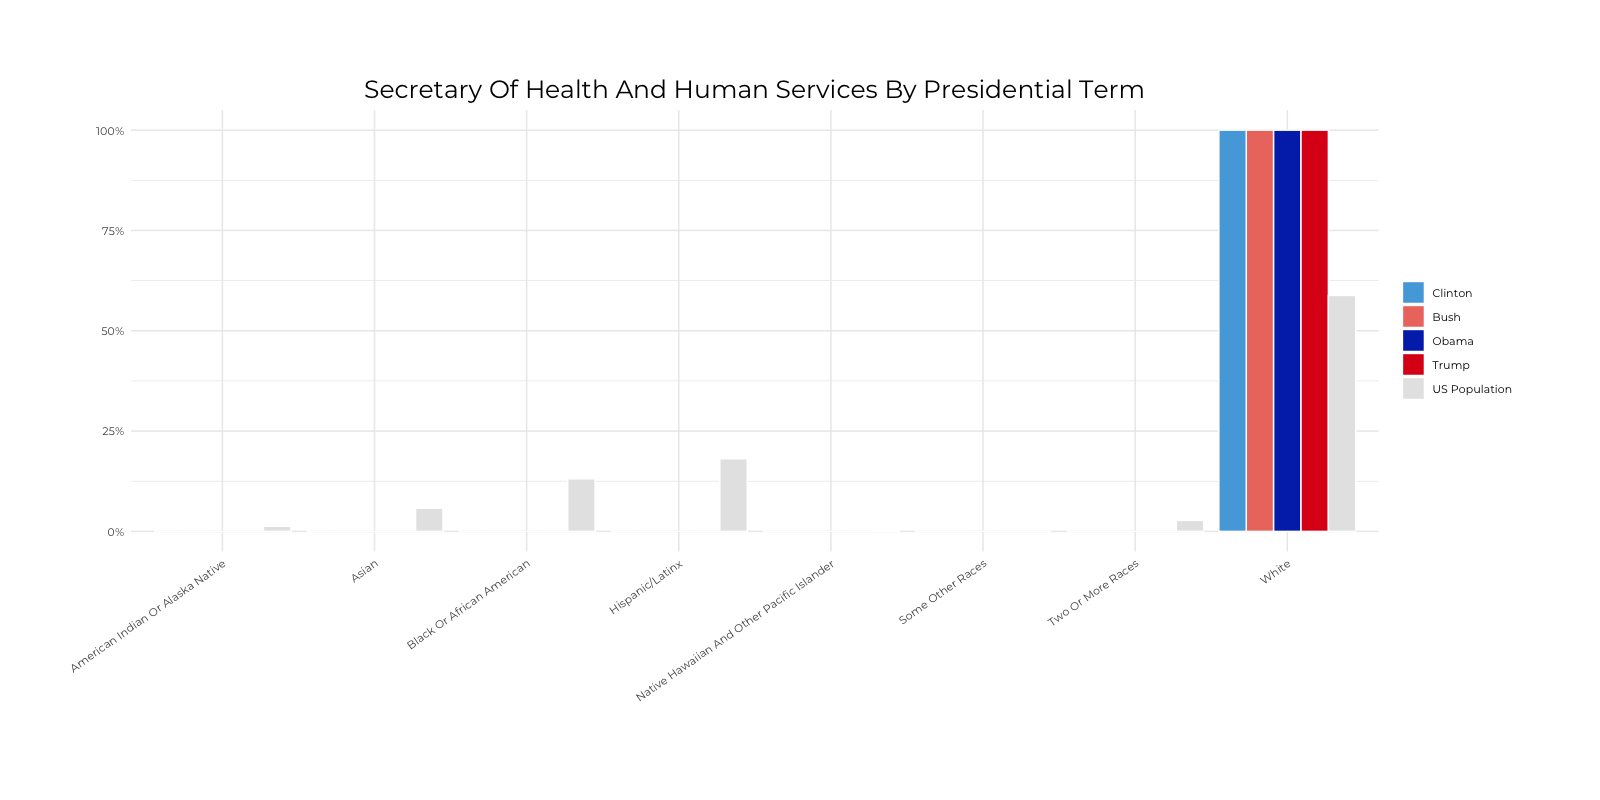 Graph about Racial Composition Comparison of Secretary of Health and Human Services by Presidential Terms. More detailed text description below.